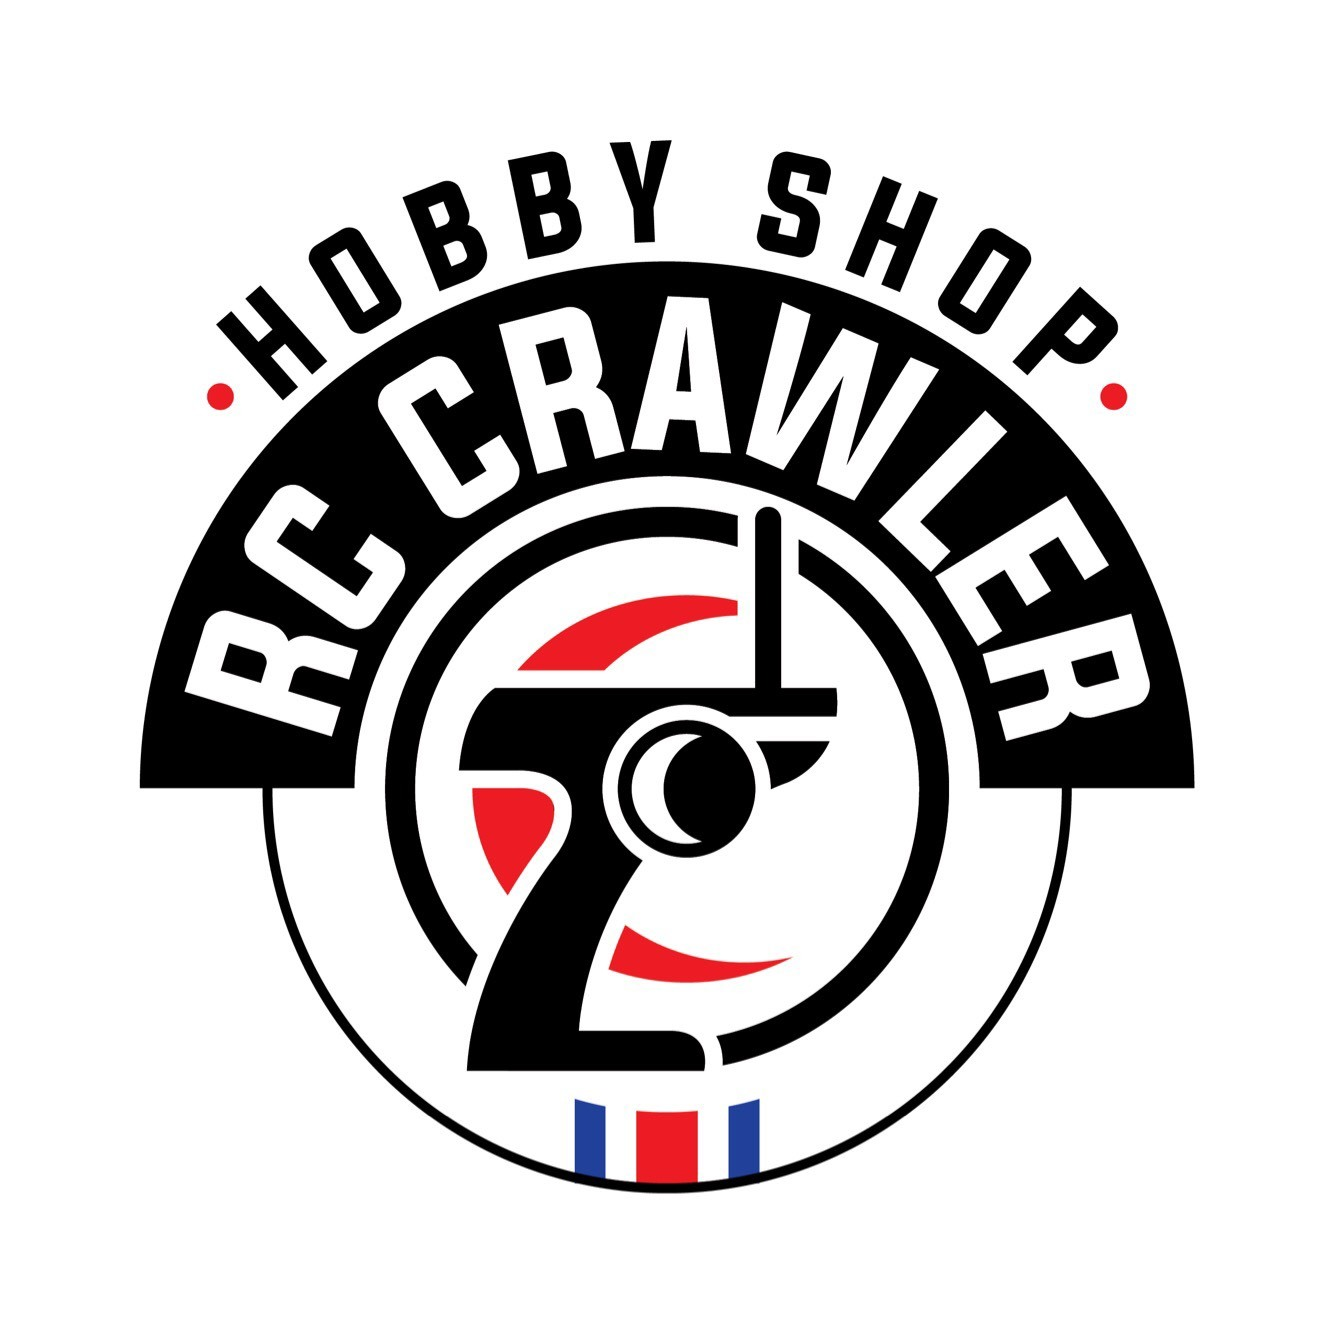 RC Crawler Hobby Shop: COSTA RICA